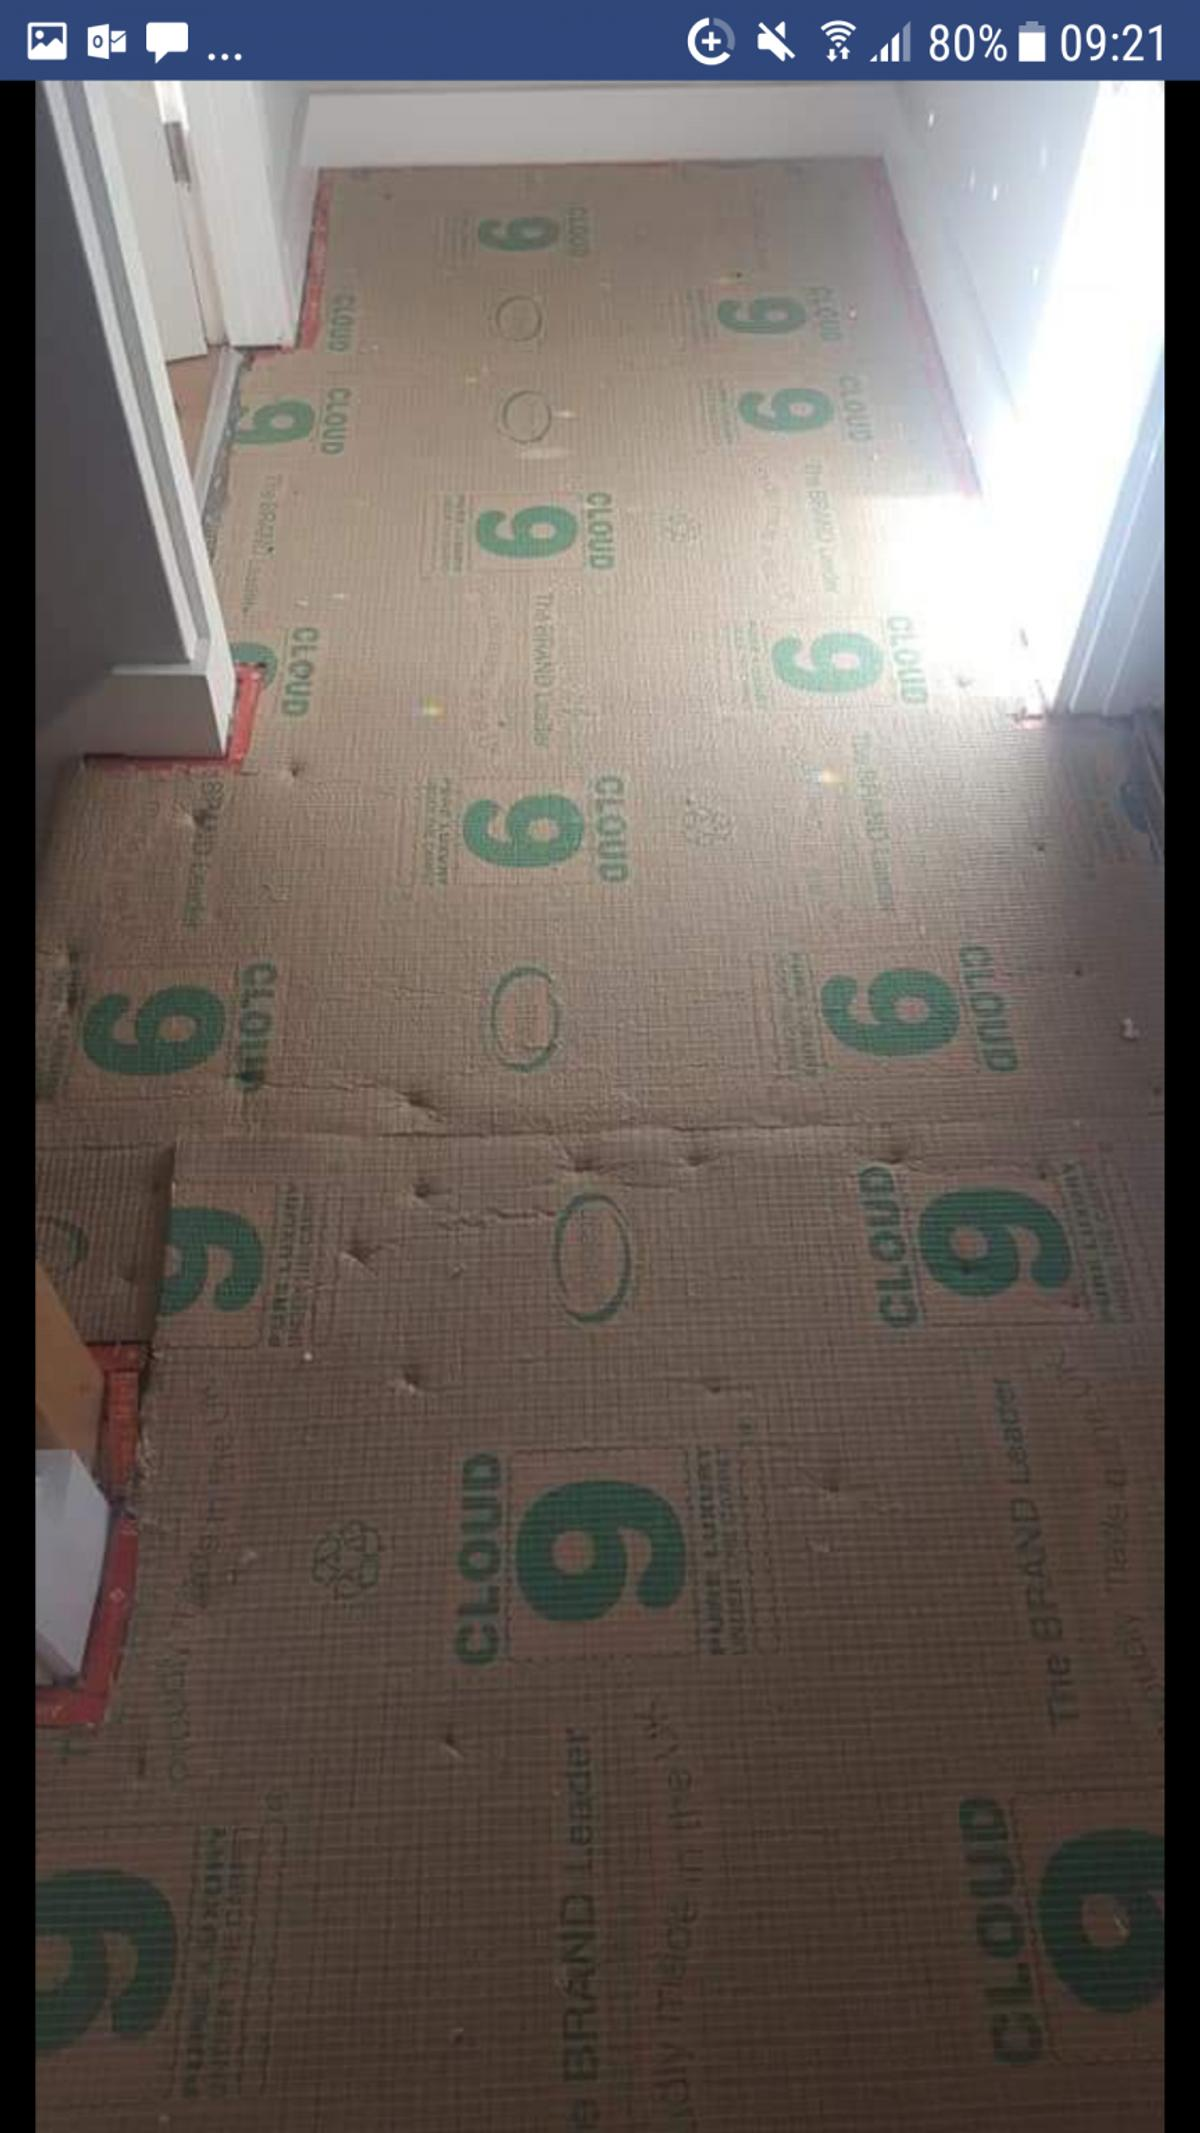 **Carpet for sale** *Includes underlay and gripper rods*  £200 *BRAND NEW, NEVER LAID* 4m x 3m carpet with underlay, gripper rods £50 *USED* hall and stairs (down for 3 weeks) Full details below  Pet Free and smoke free  Scopious Rhiana - beautiful, thick carpet. Cloud 9 11mm - highest quality underlay Gripper rods  *USED* (see pics)  Stairs (10 steps) 81cm (w) x 25cm (d) x 18cm (h)  Quarter landing 85cm x 85cm  2 larger bull nose steps (see pics)  Landing 3.4m x 1.07m (at th